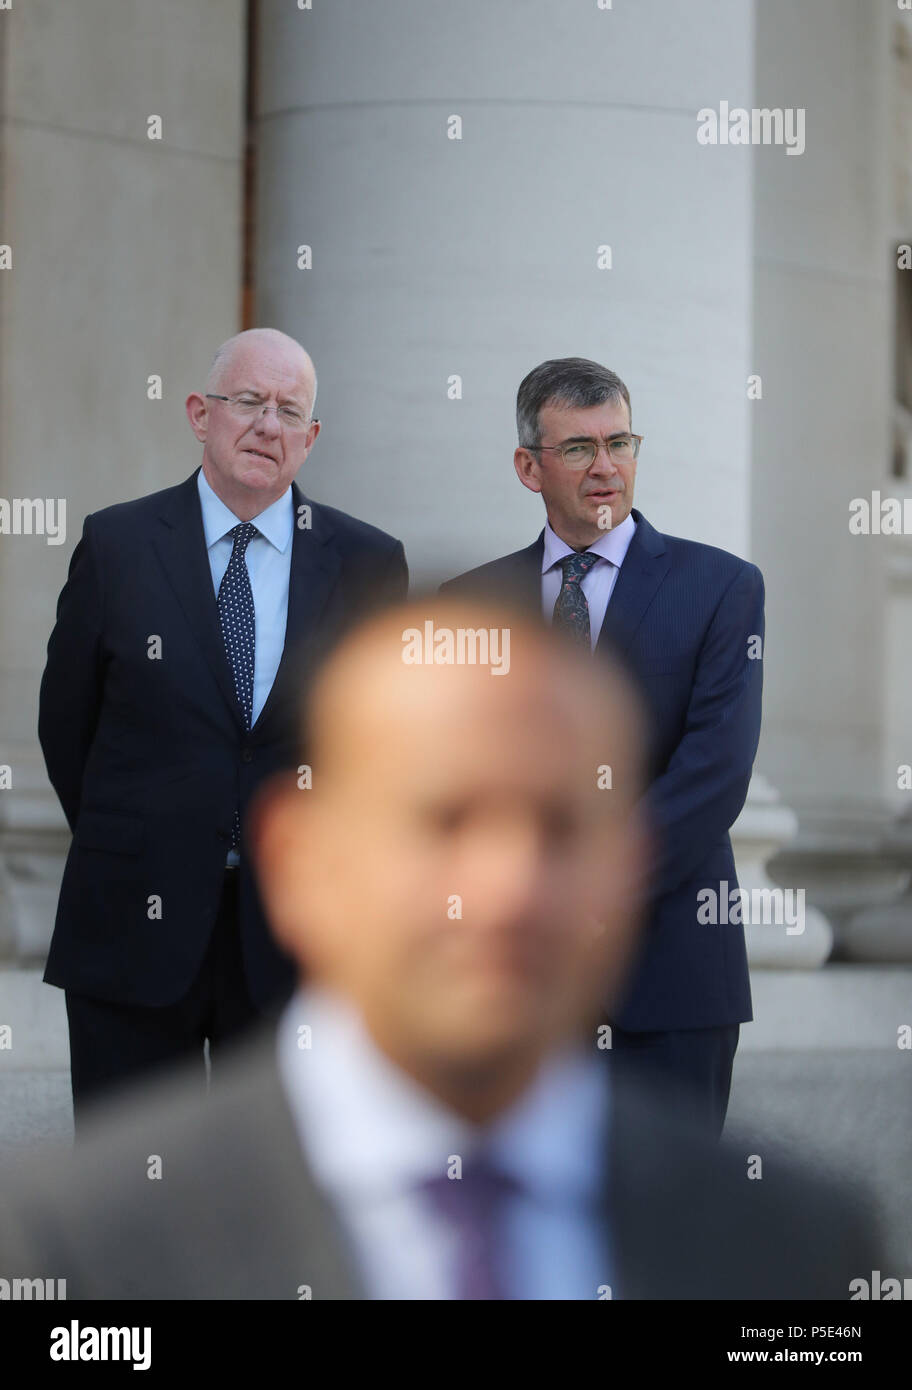 Justice Minister Charles Flannigan (left) at the announcement of Drew Harris (right) as the new Garda Commissioner with Taoiseach Leo Varadkar (front) speaking to the media at the government buildings in Dublin. - Stock Image